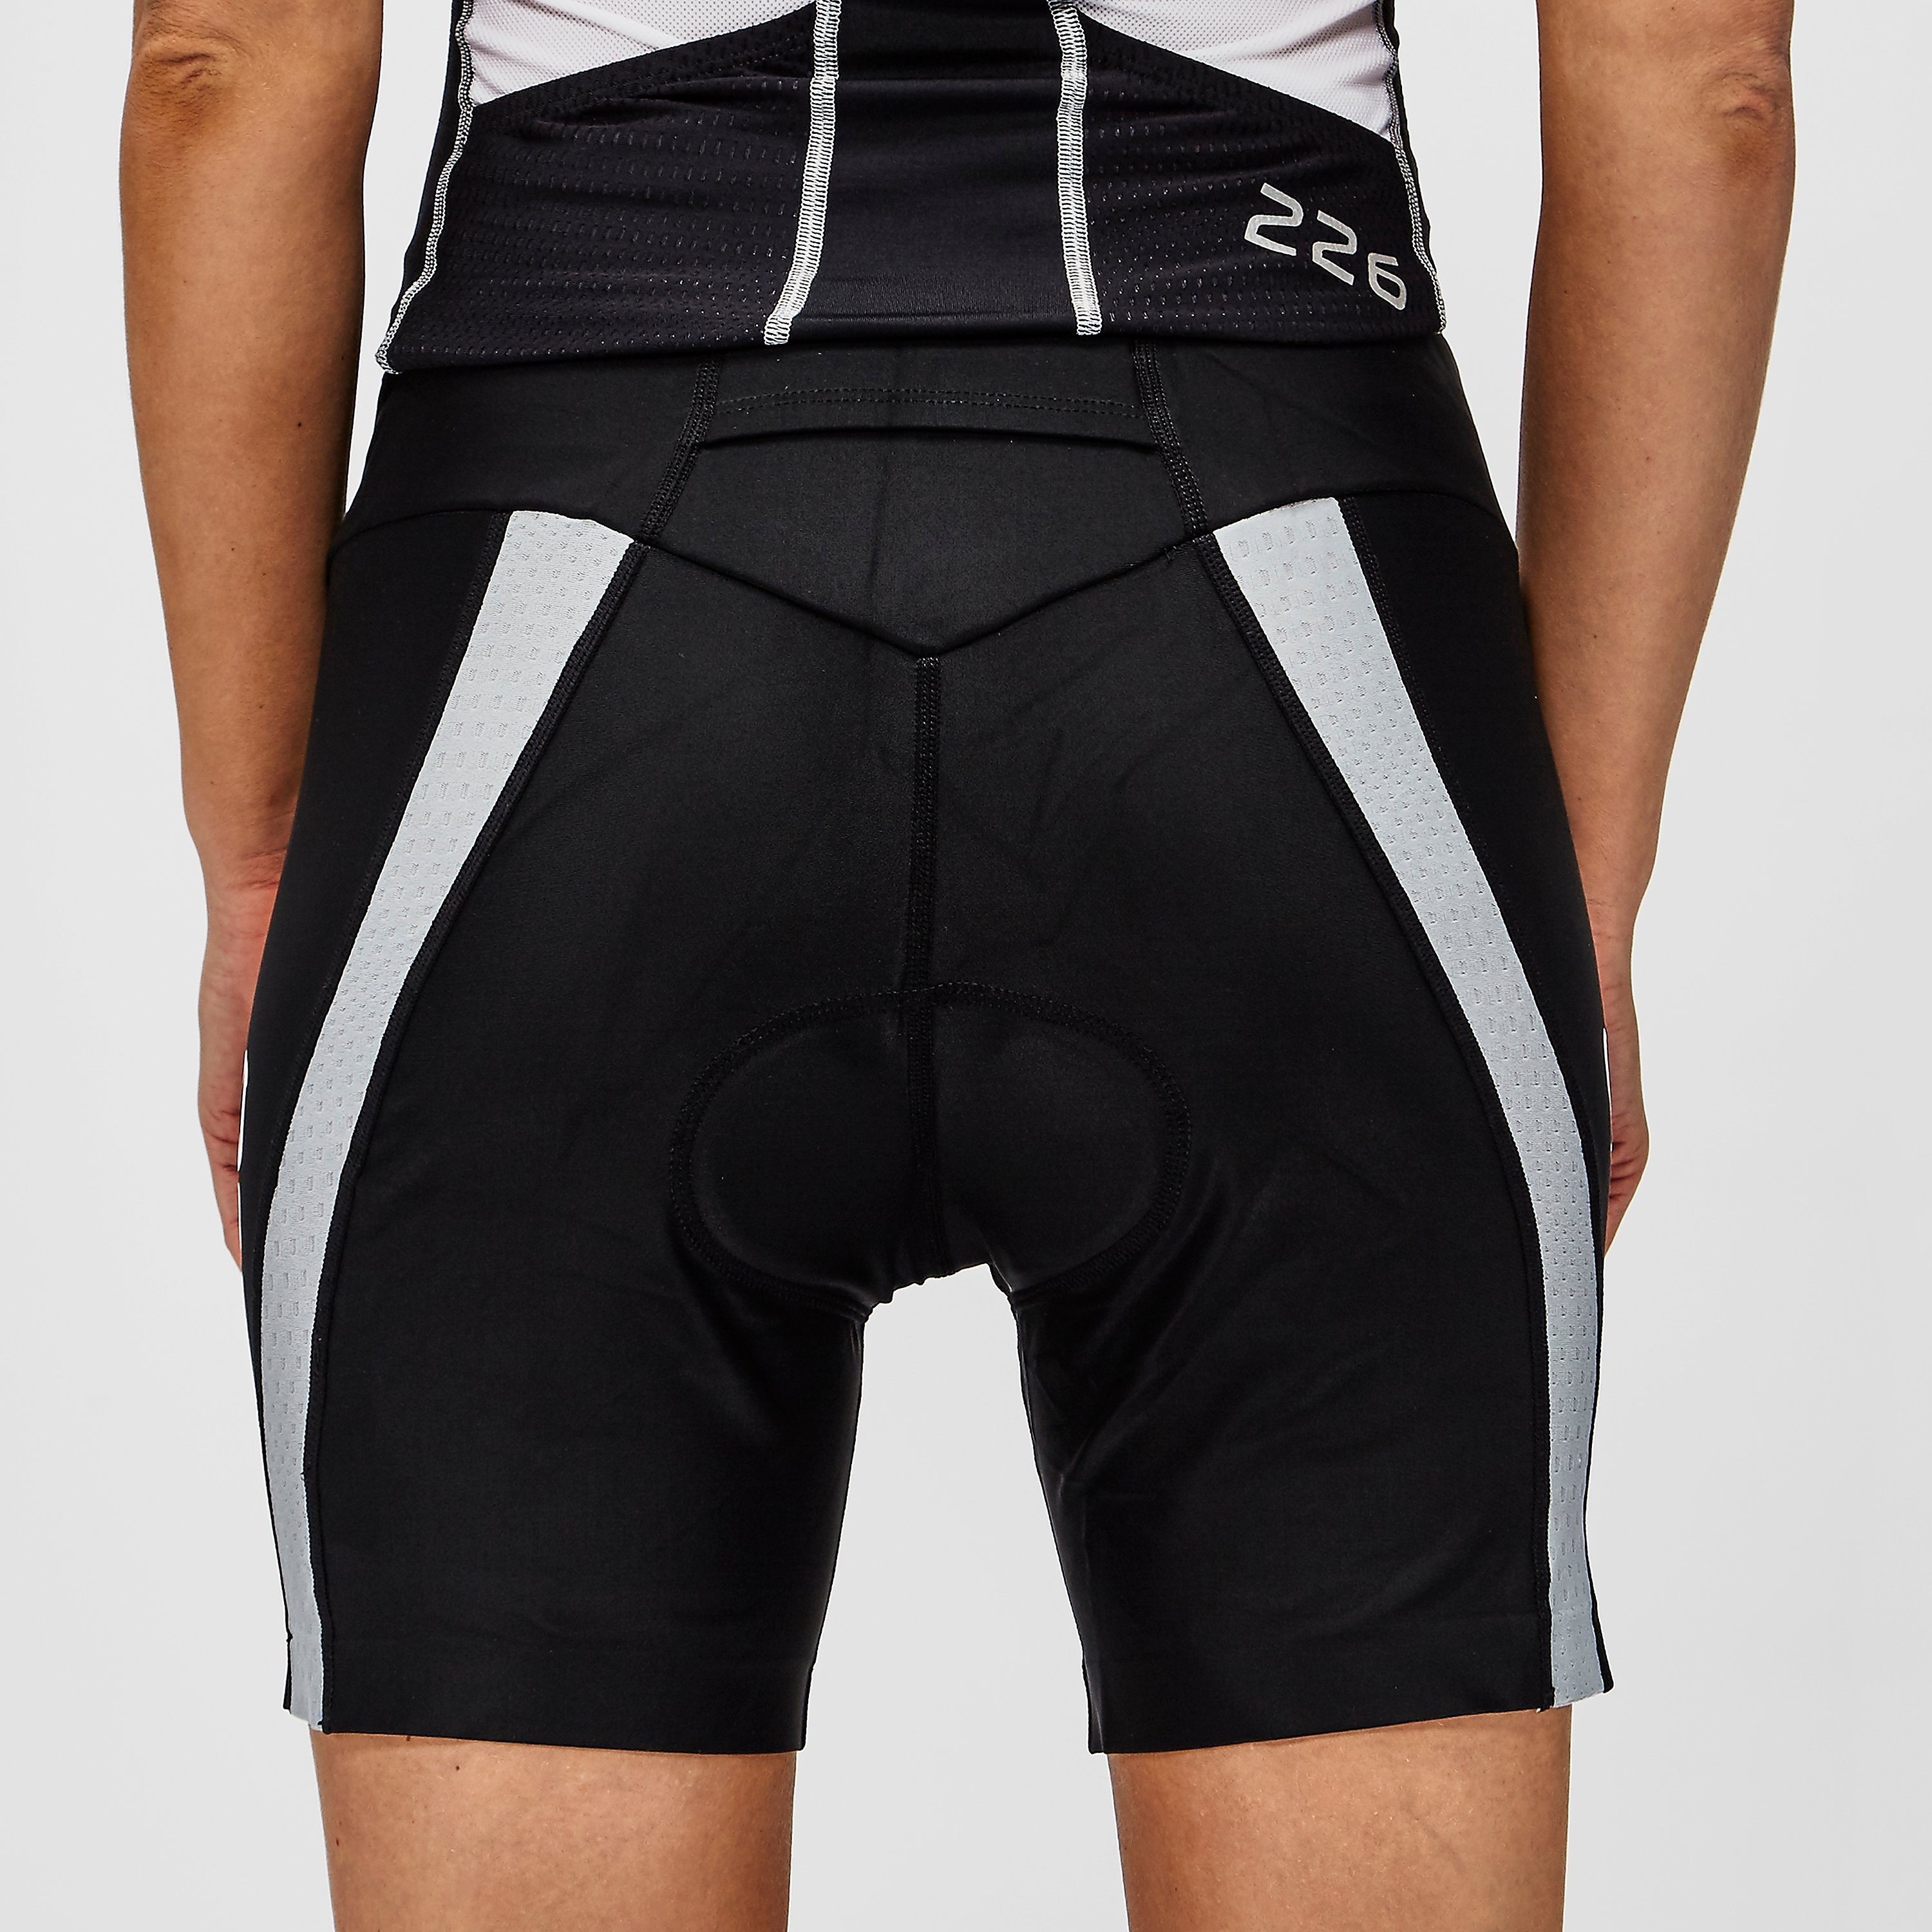 Orca Core Ladies Hipster Tri Pant